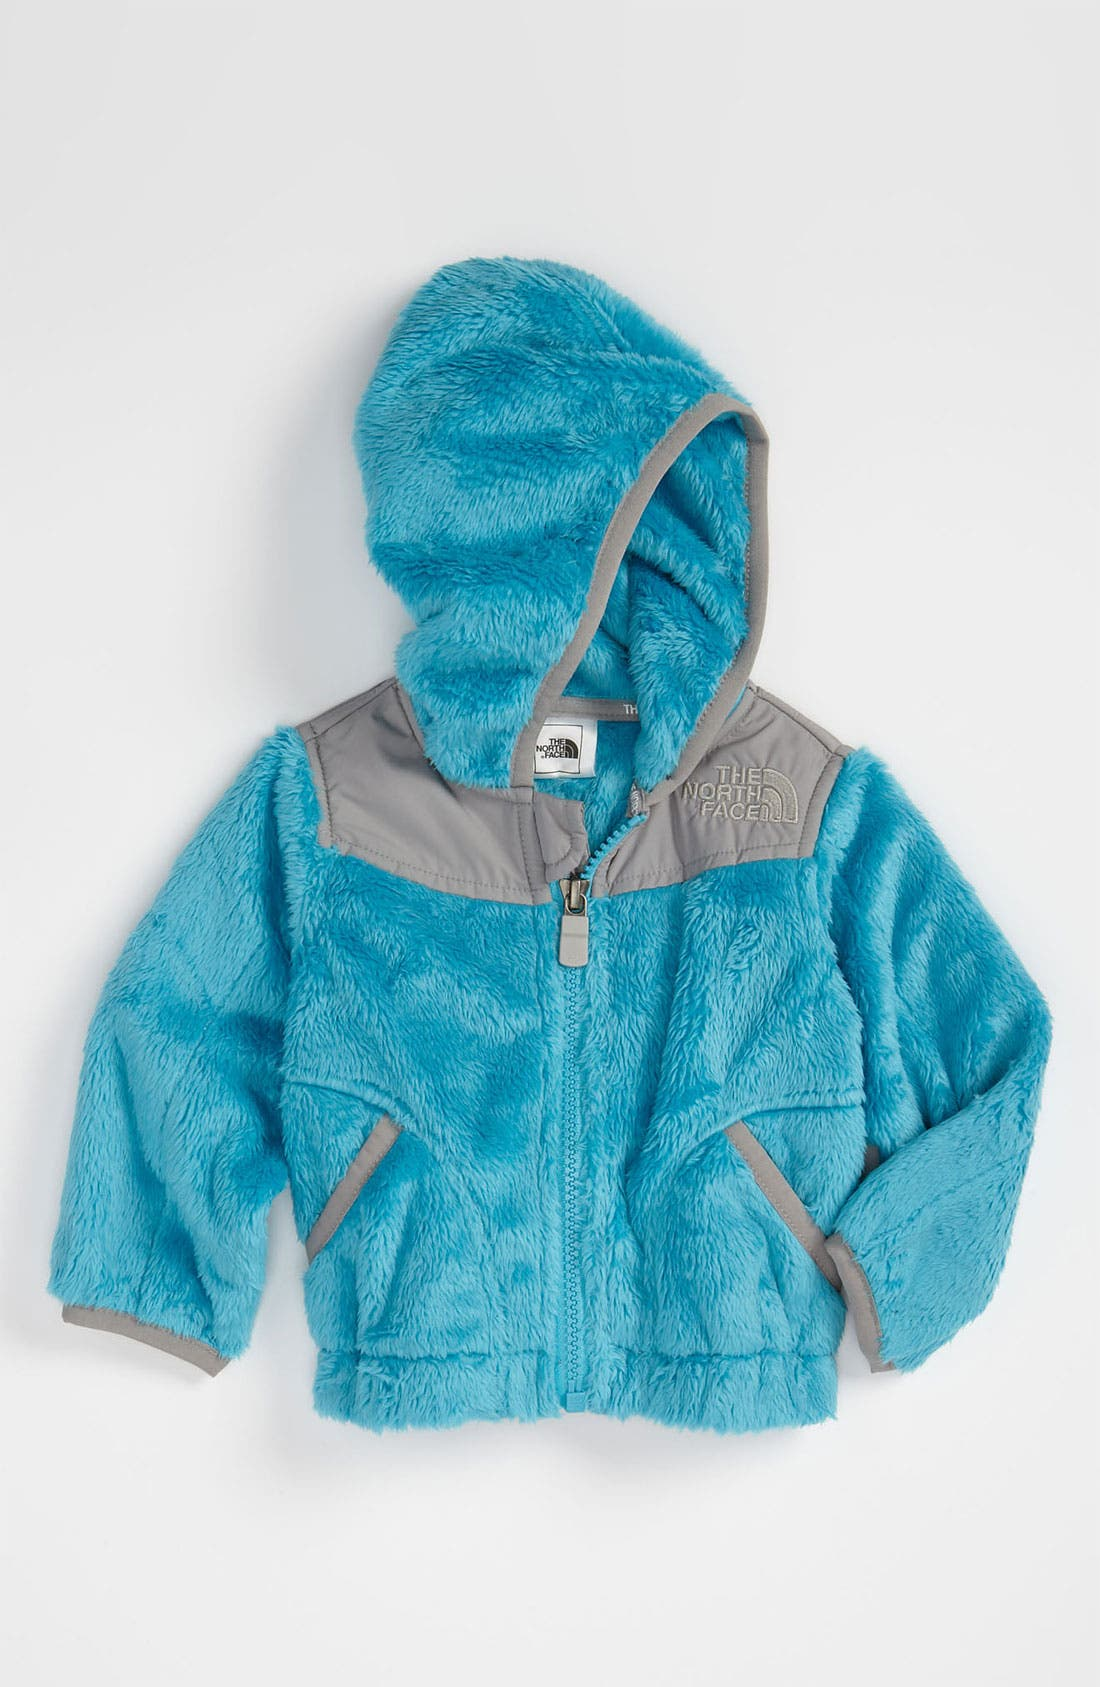 Main Image - The North Face 'Oso' Hoodie (Baby Girls)